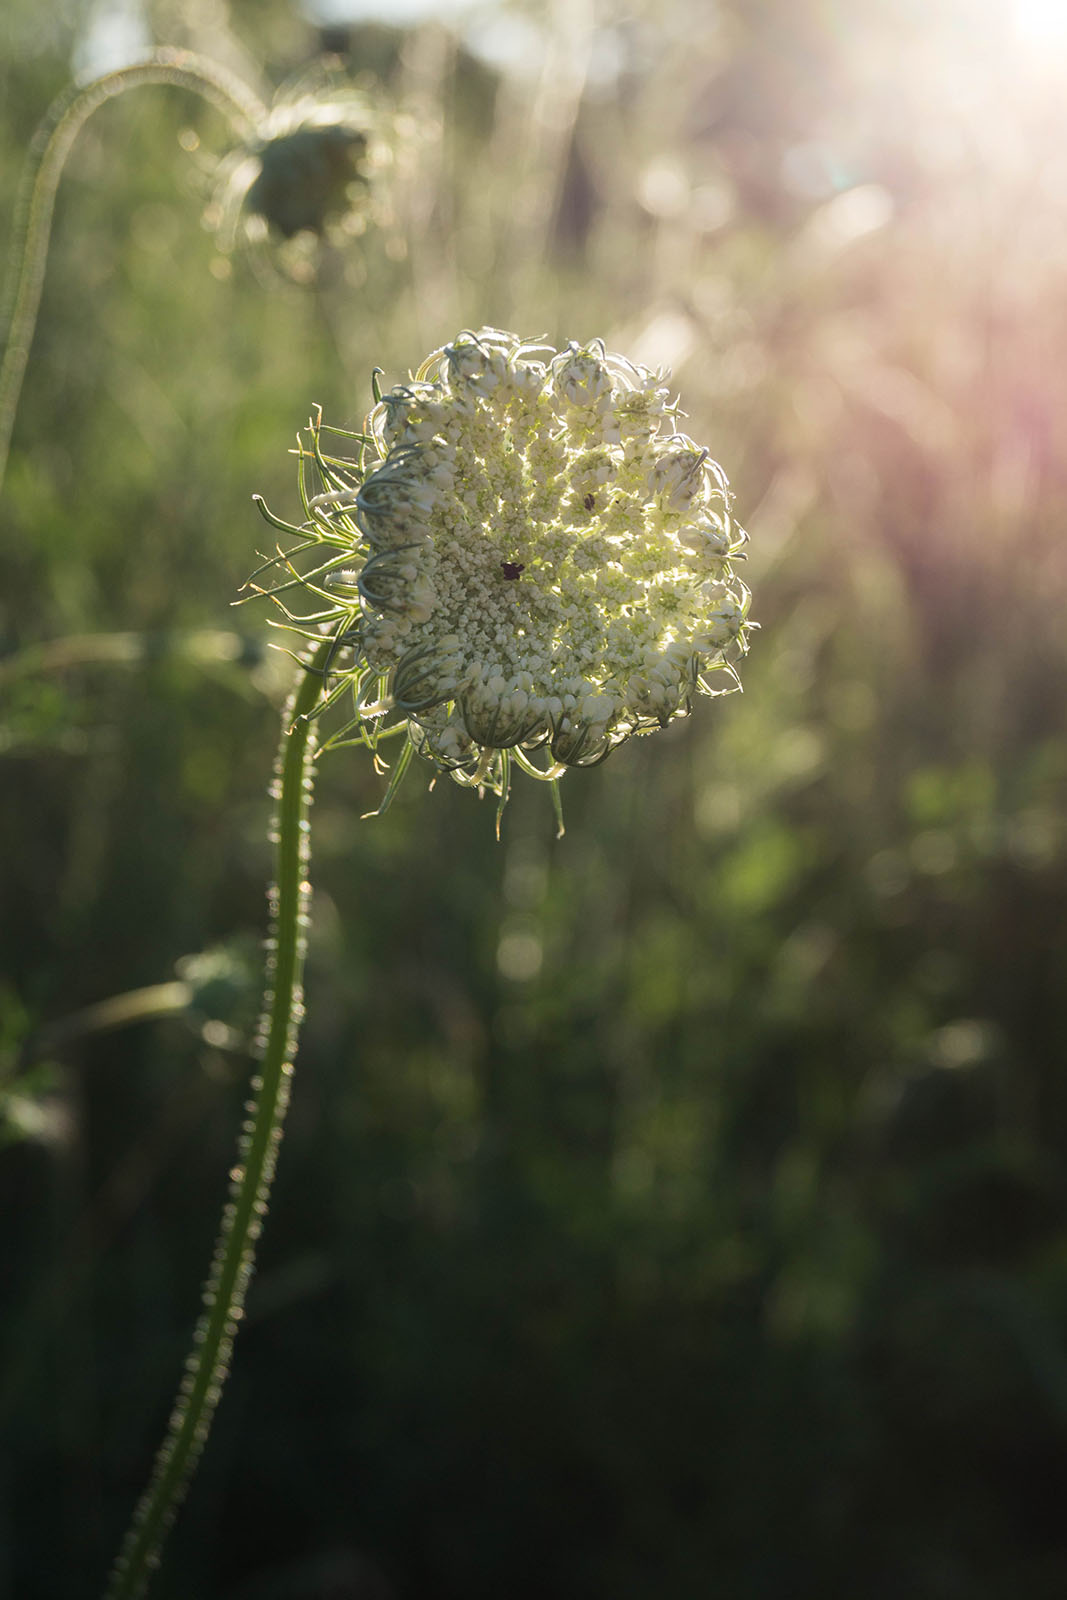 Queen's Lace copyright @ Ashley Bremer